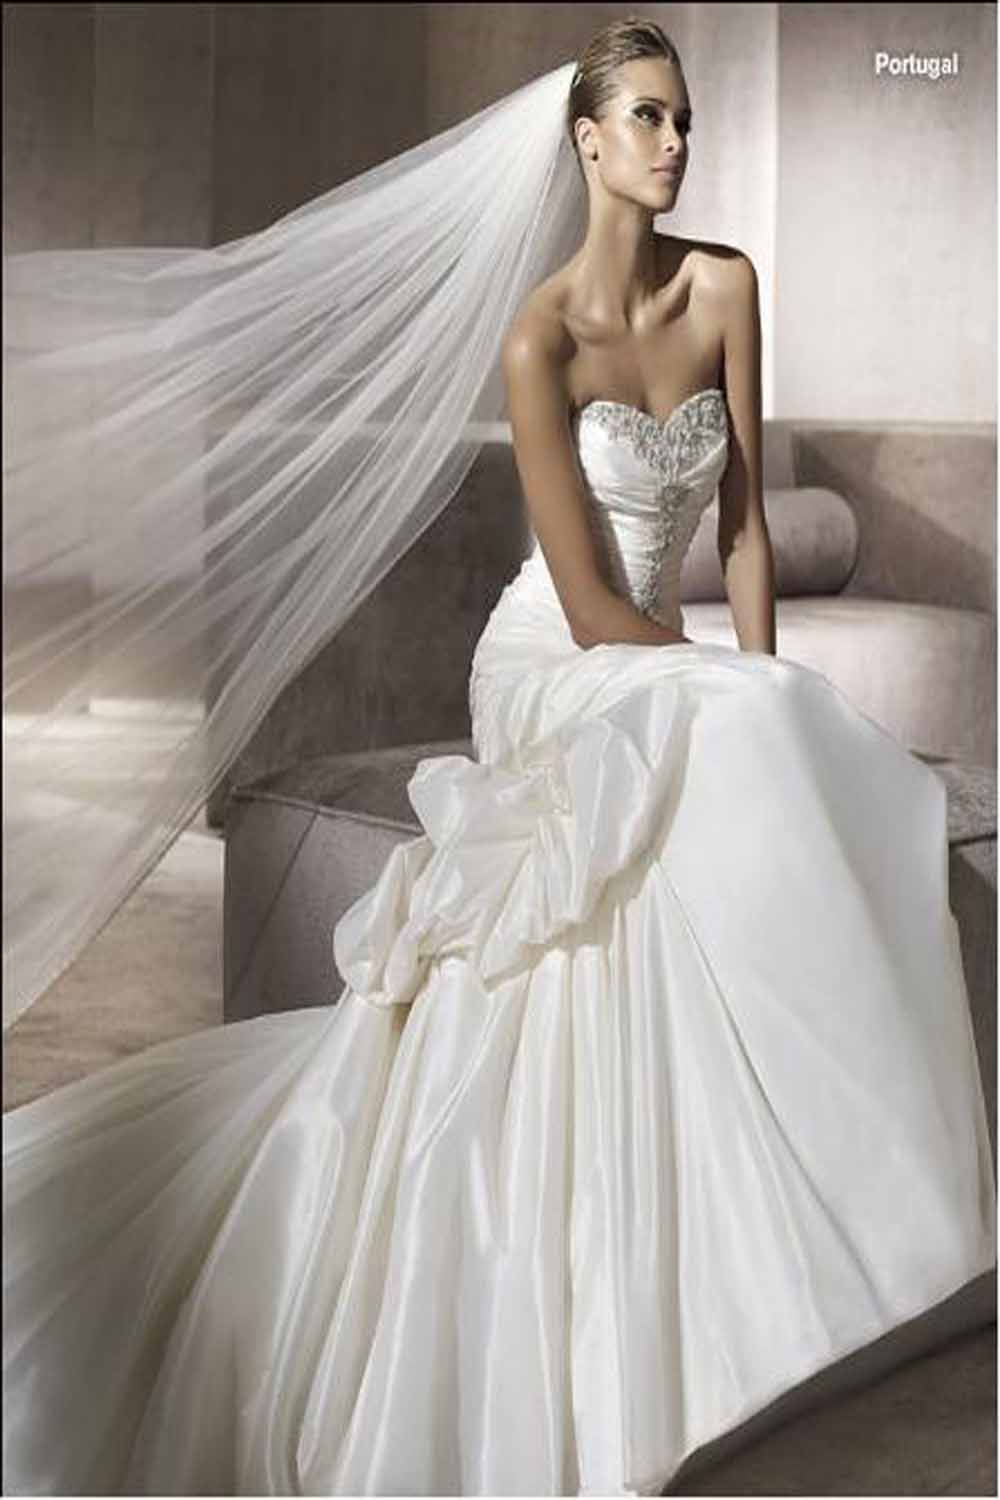 Tiger Iphone 6 Wallpaper Very Nice Wedding Dresses 2012 Wallpaper Amp Pictures